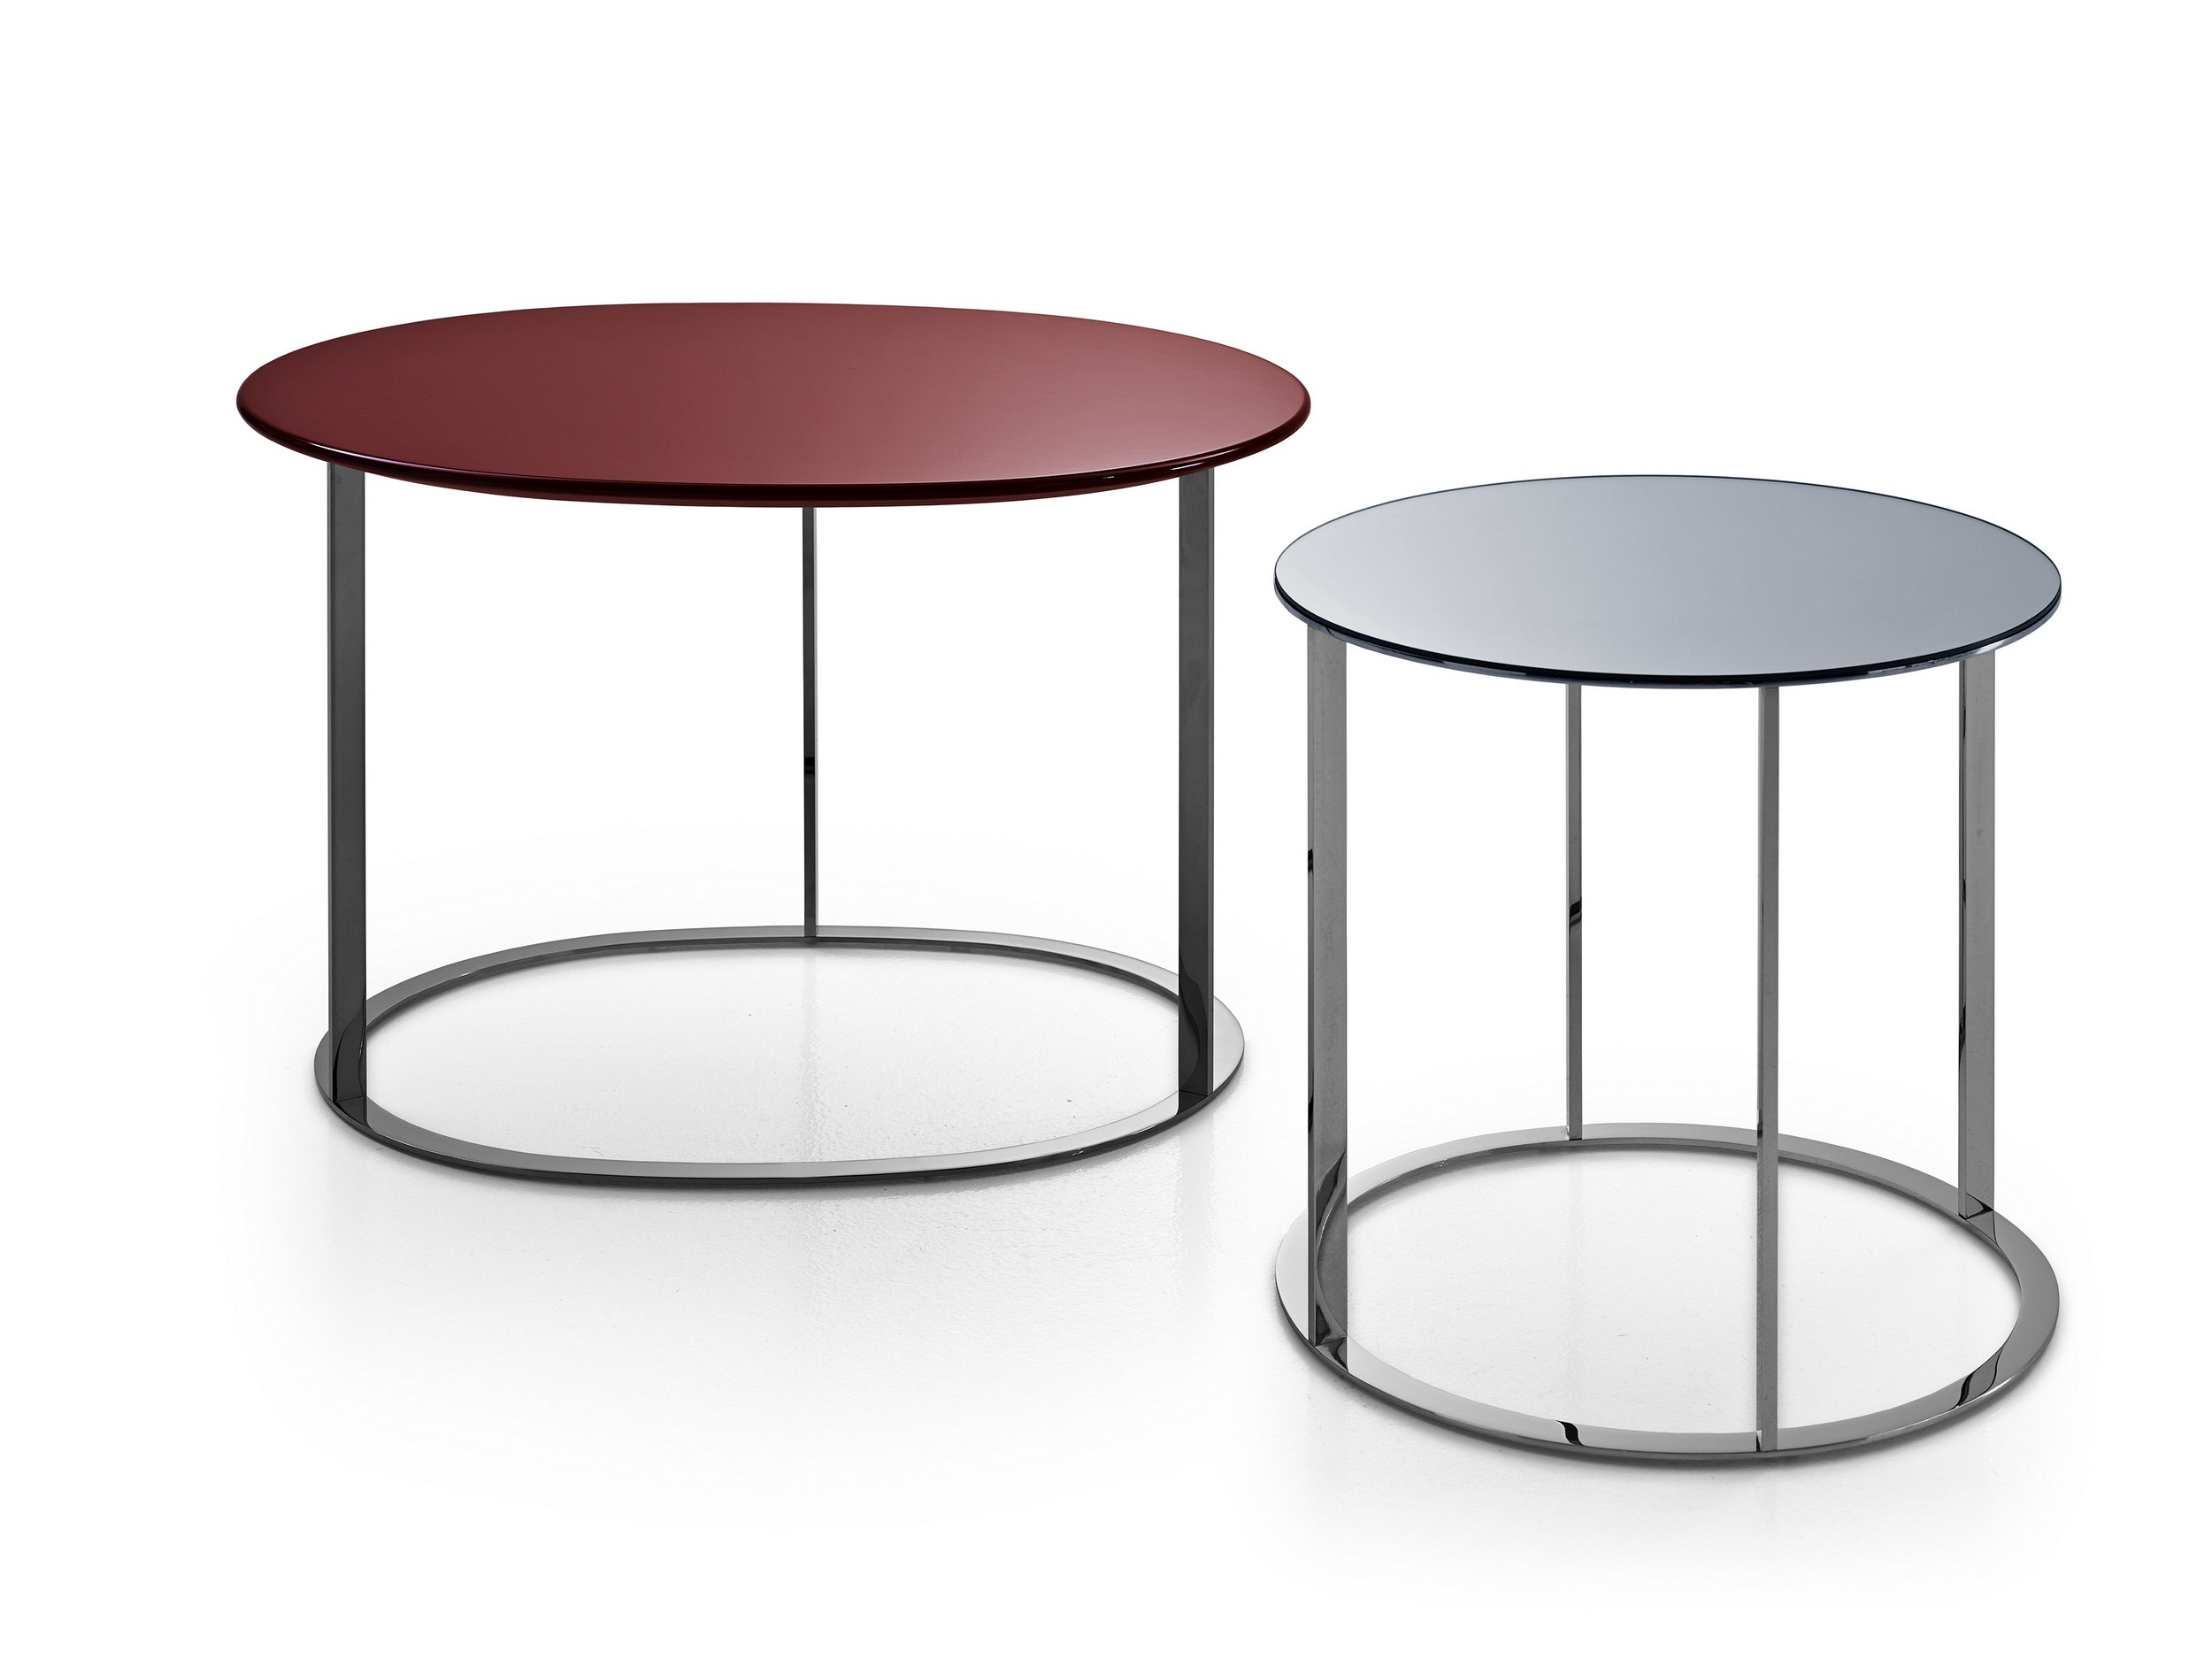 Round Mdf Coffee Table Pathos Collection By Maxalto A Brand Of B B Italia Spa Design Antonio